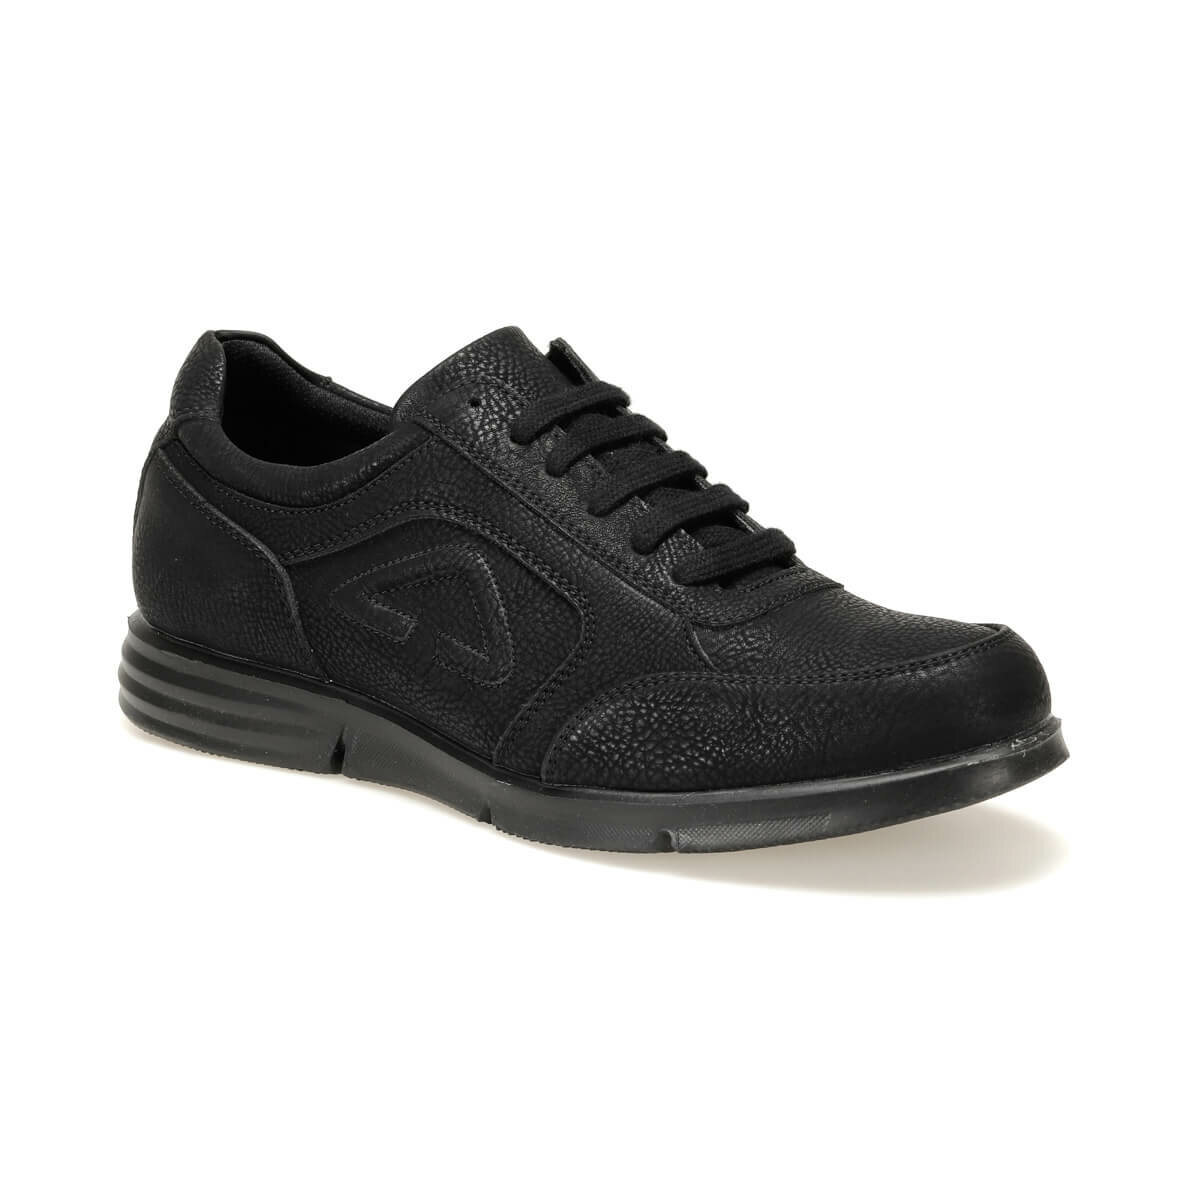 FLO 014-3 C Black Male Shoes Oxide